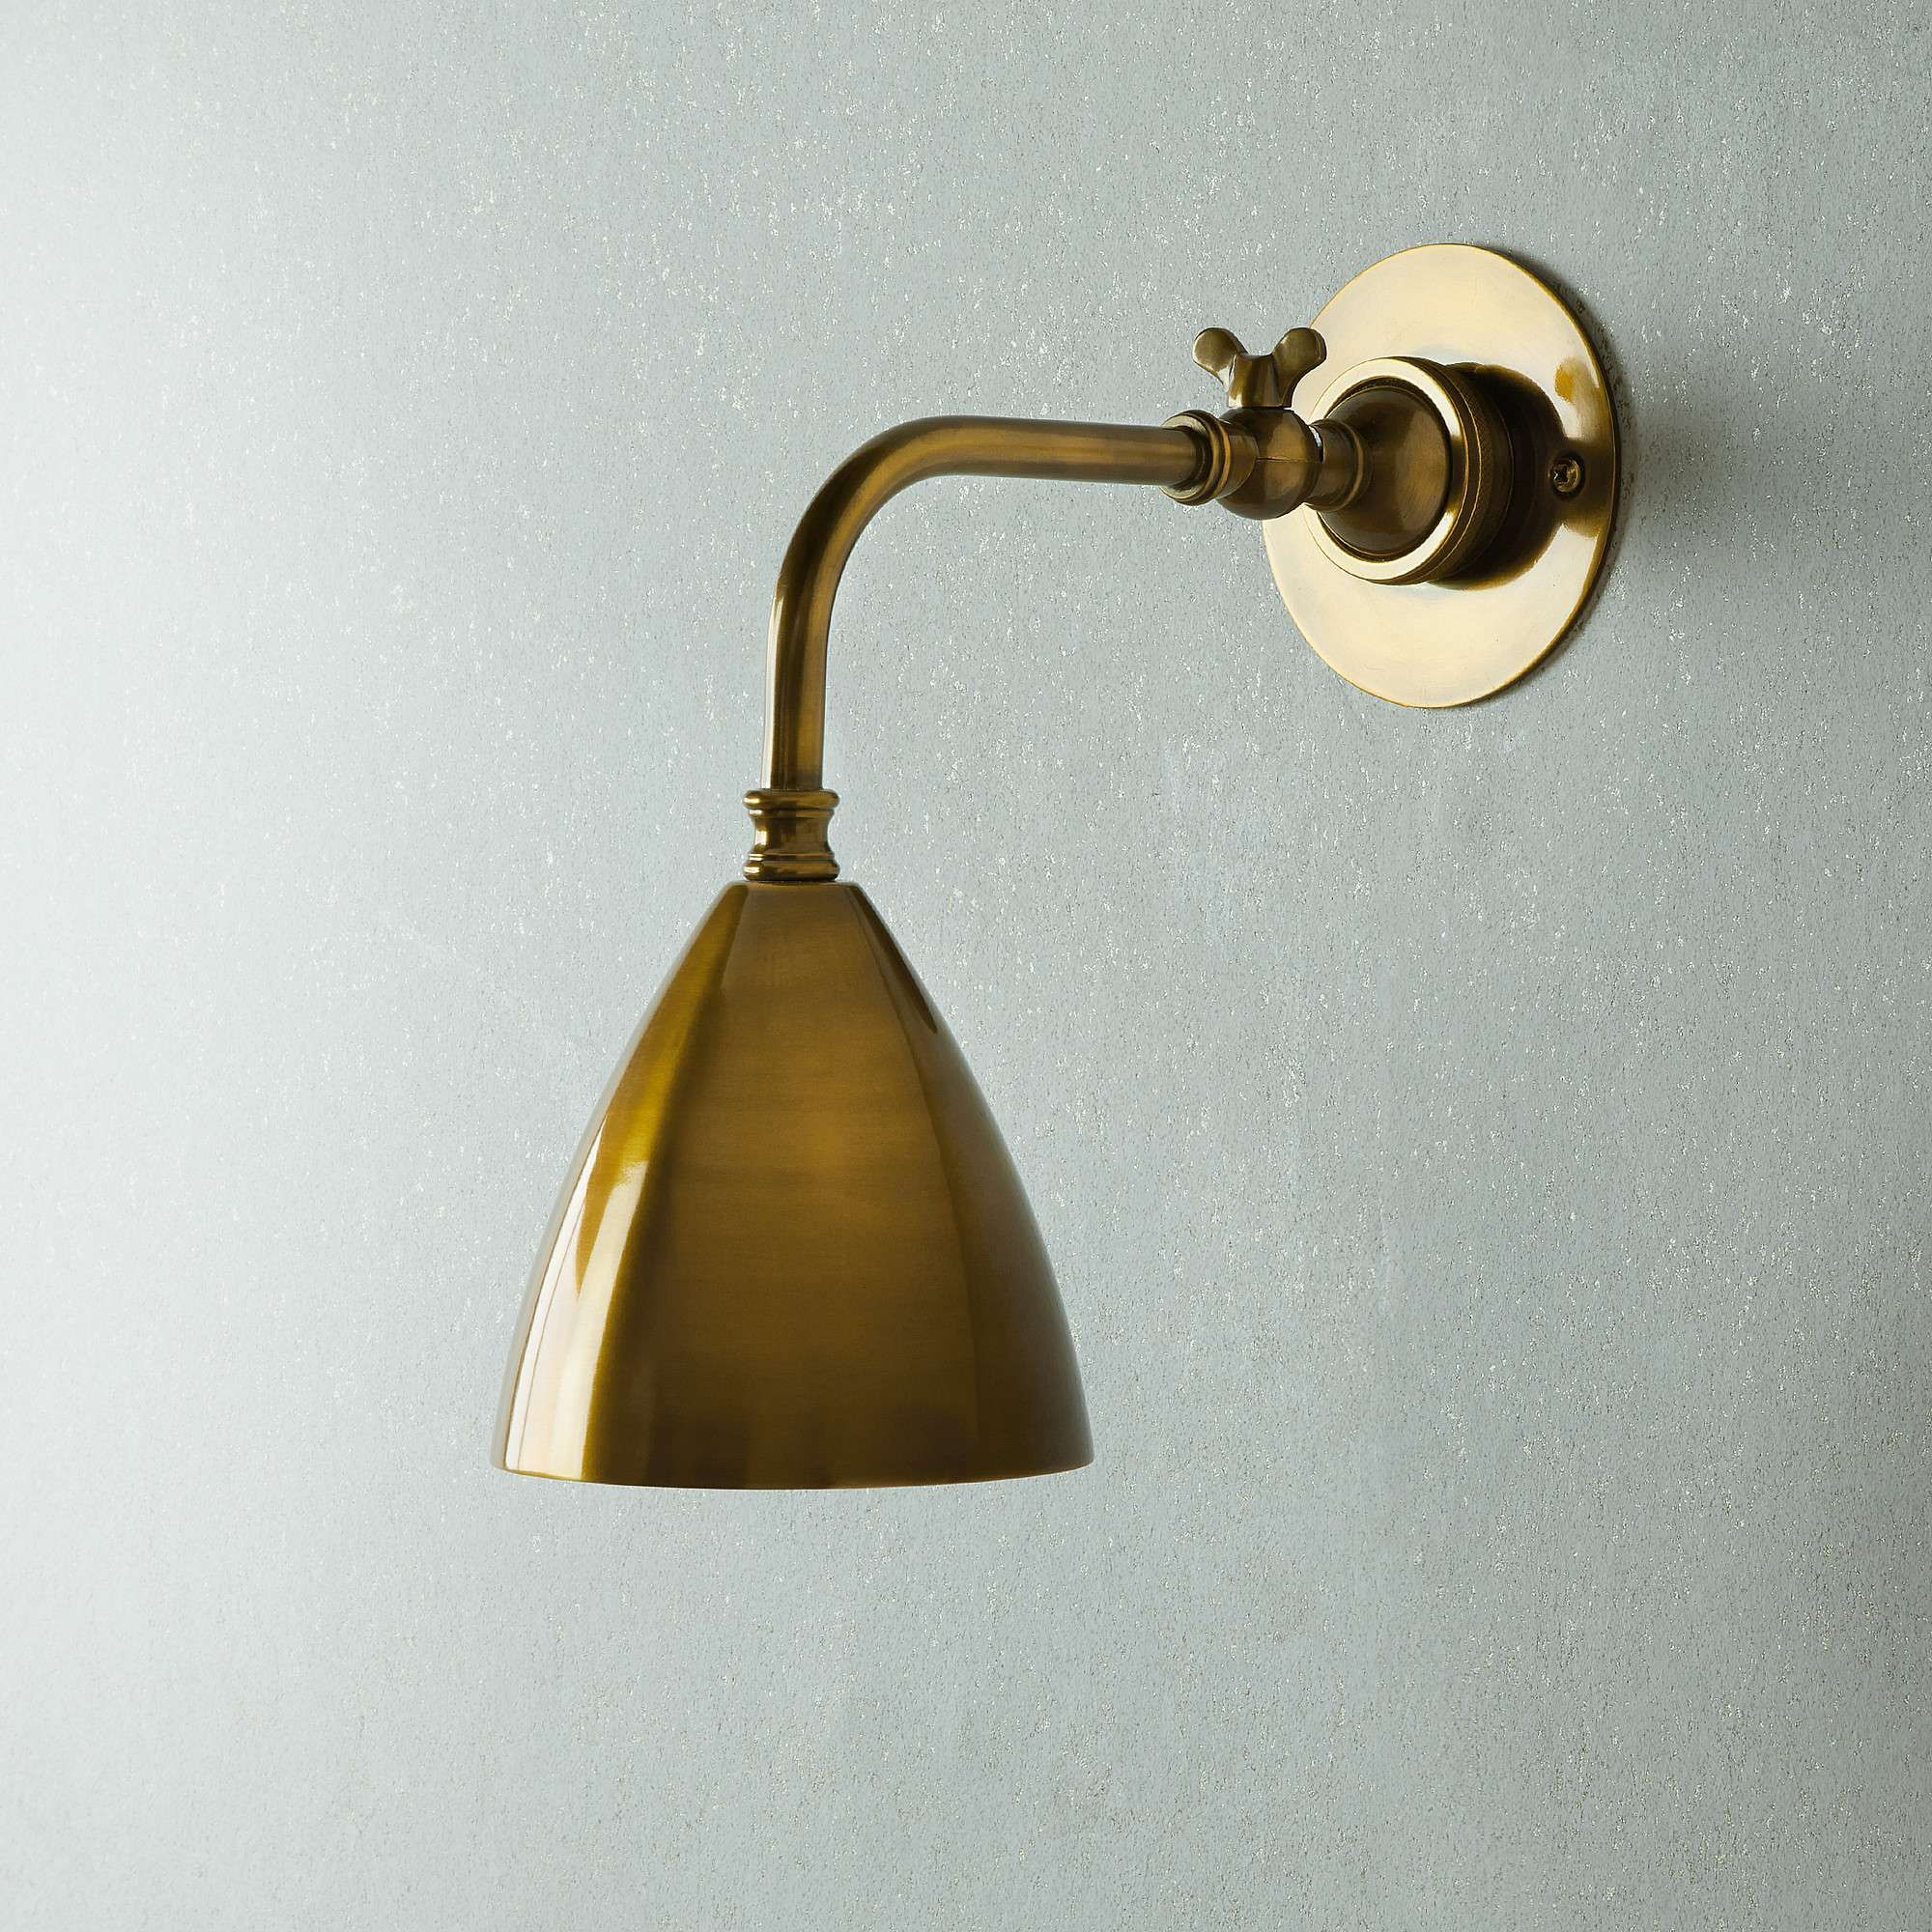 Clematis Wall Light in Antiqued Brass